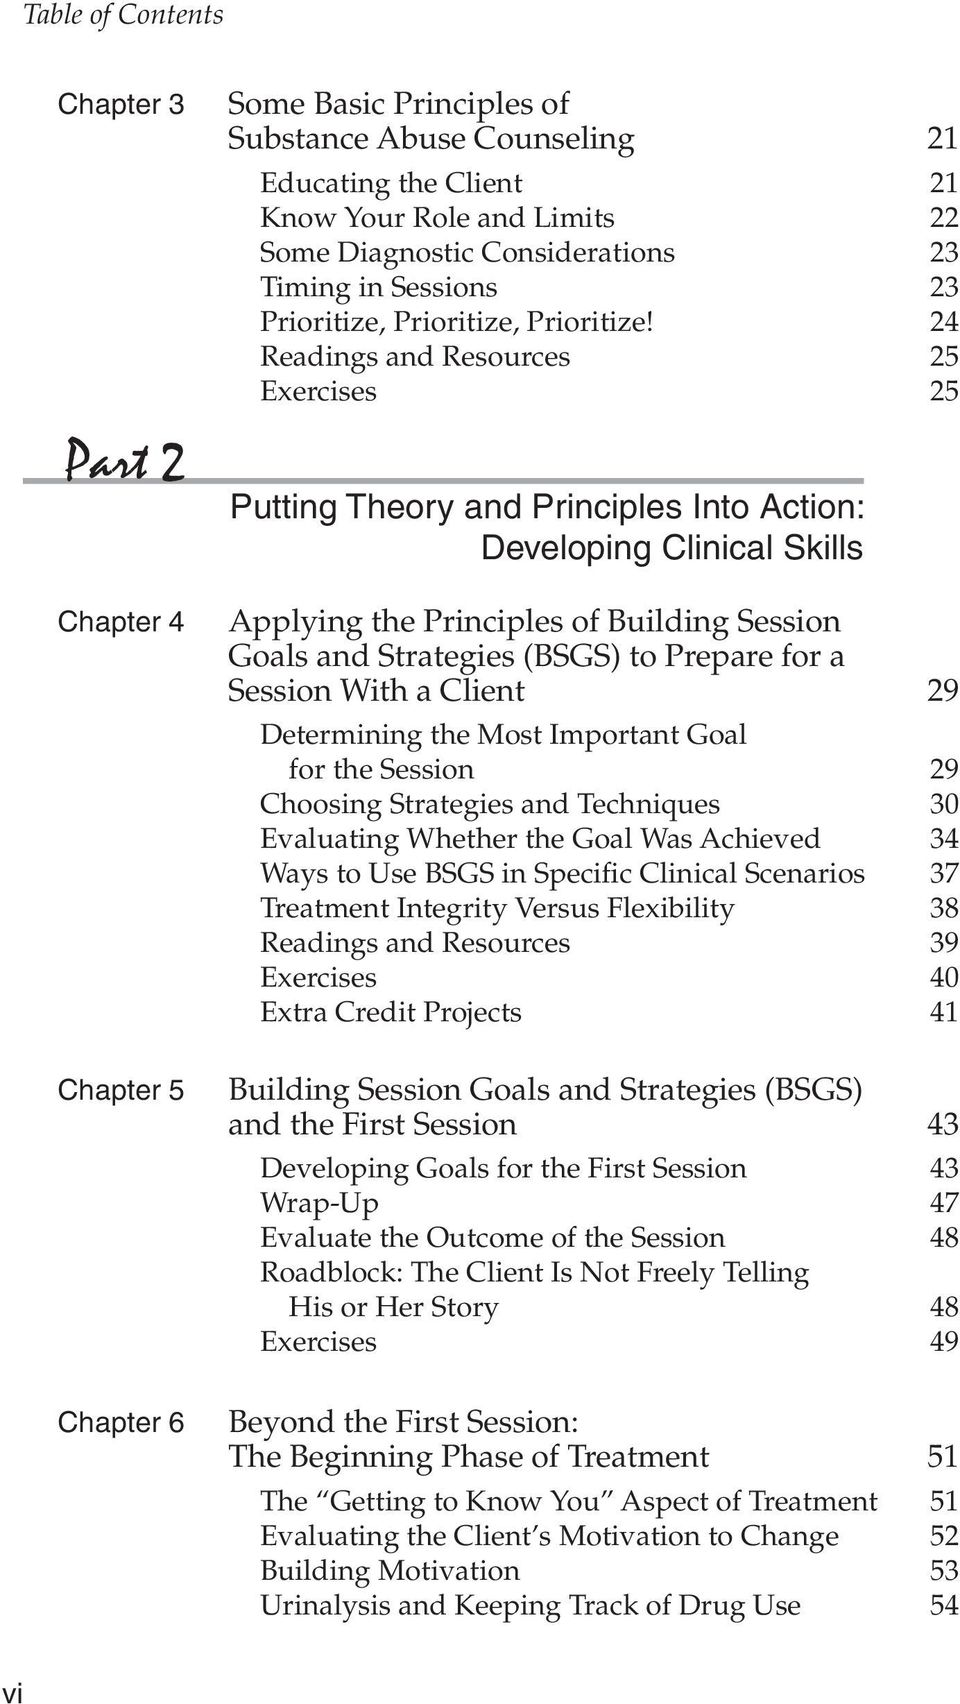 24 Readings and Resources 25 Exercises 25 Putting Theory and Principles Into Action: Developing Clinical Skills Applying the Principles of Building Session Goals and Strategies (BSGS) to Prepare for